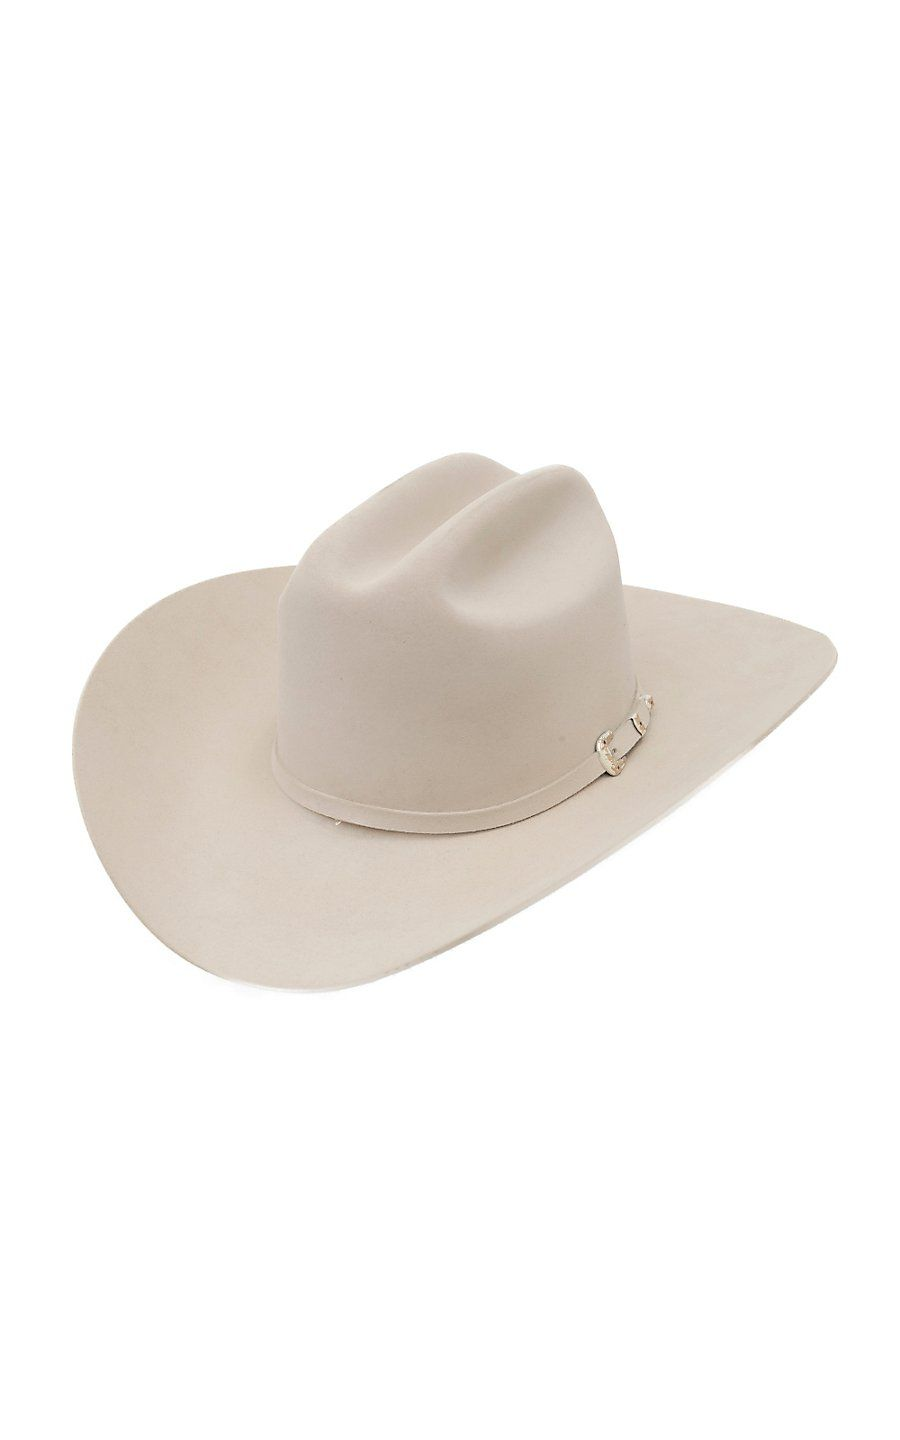 Stetson 30X El Patron Silver Belly Felt Cowboy Hat in 2019  f01272016be